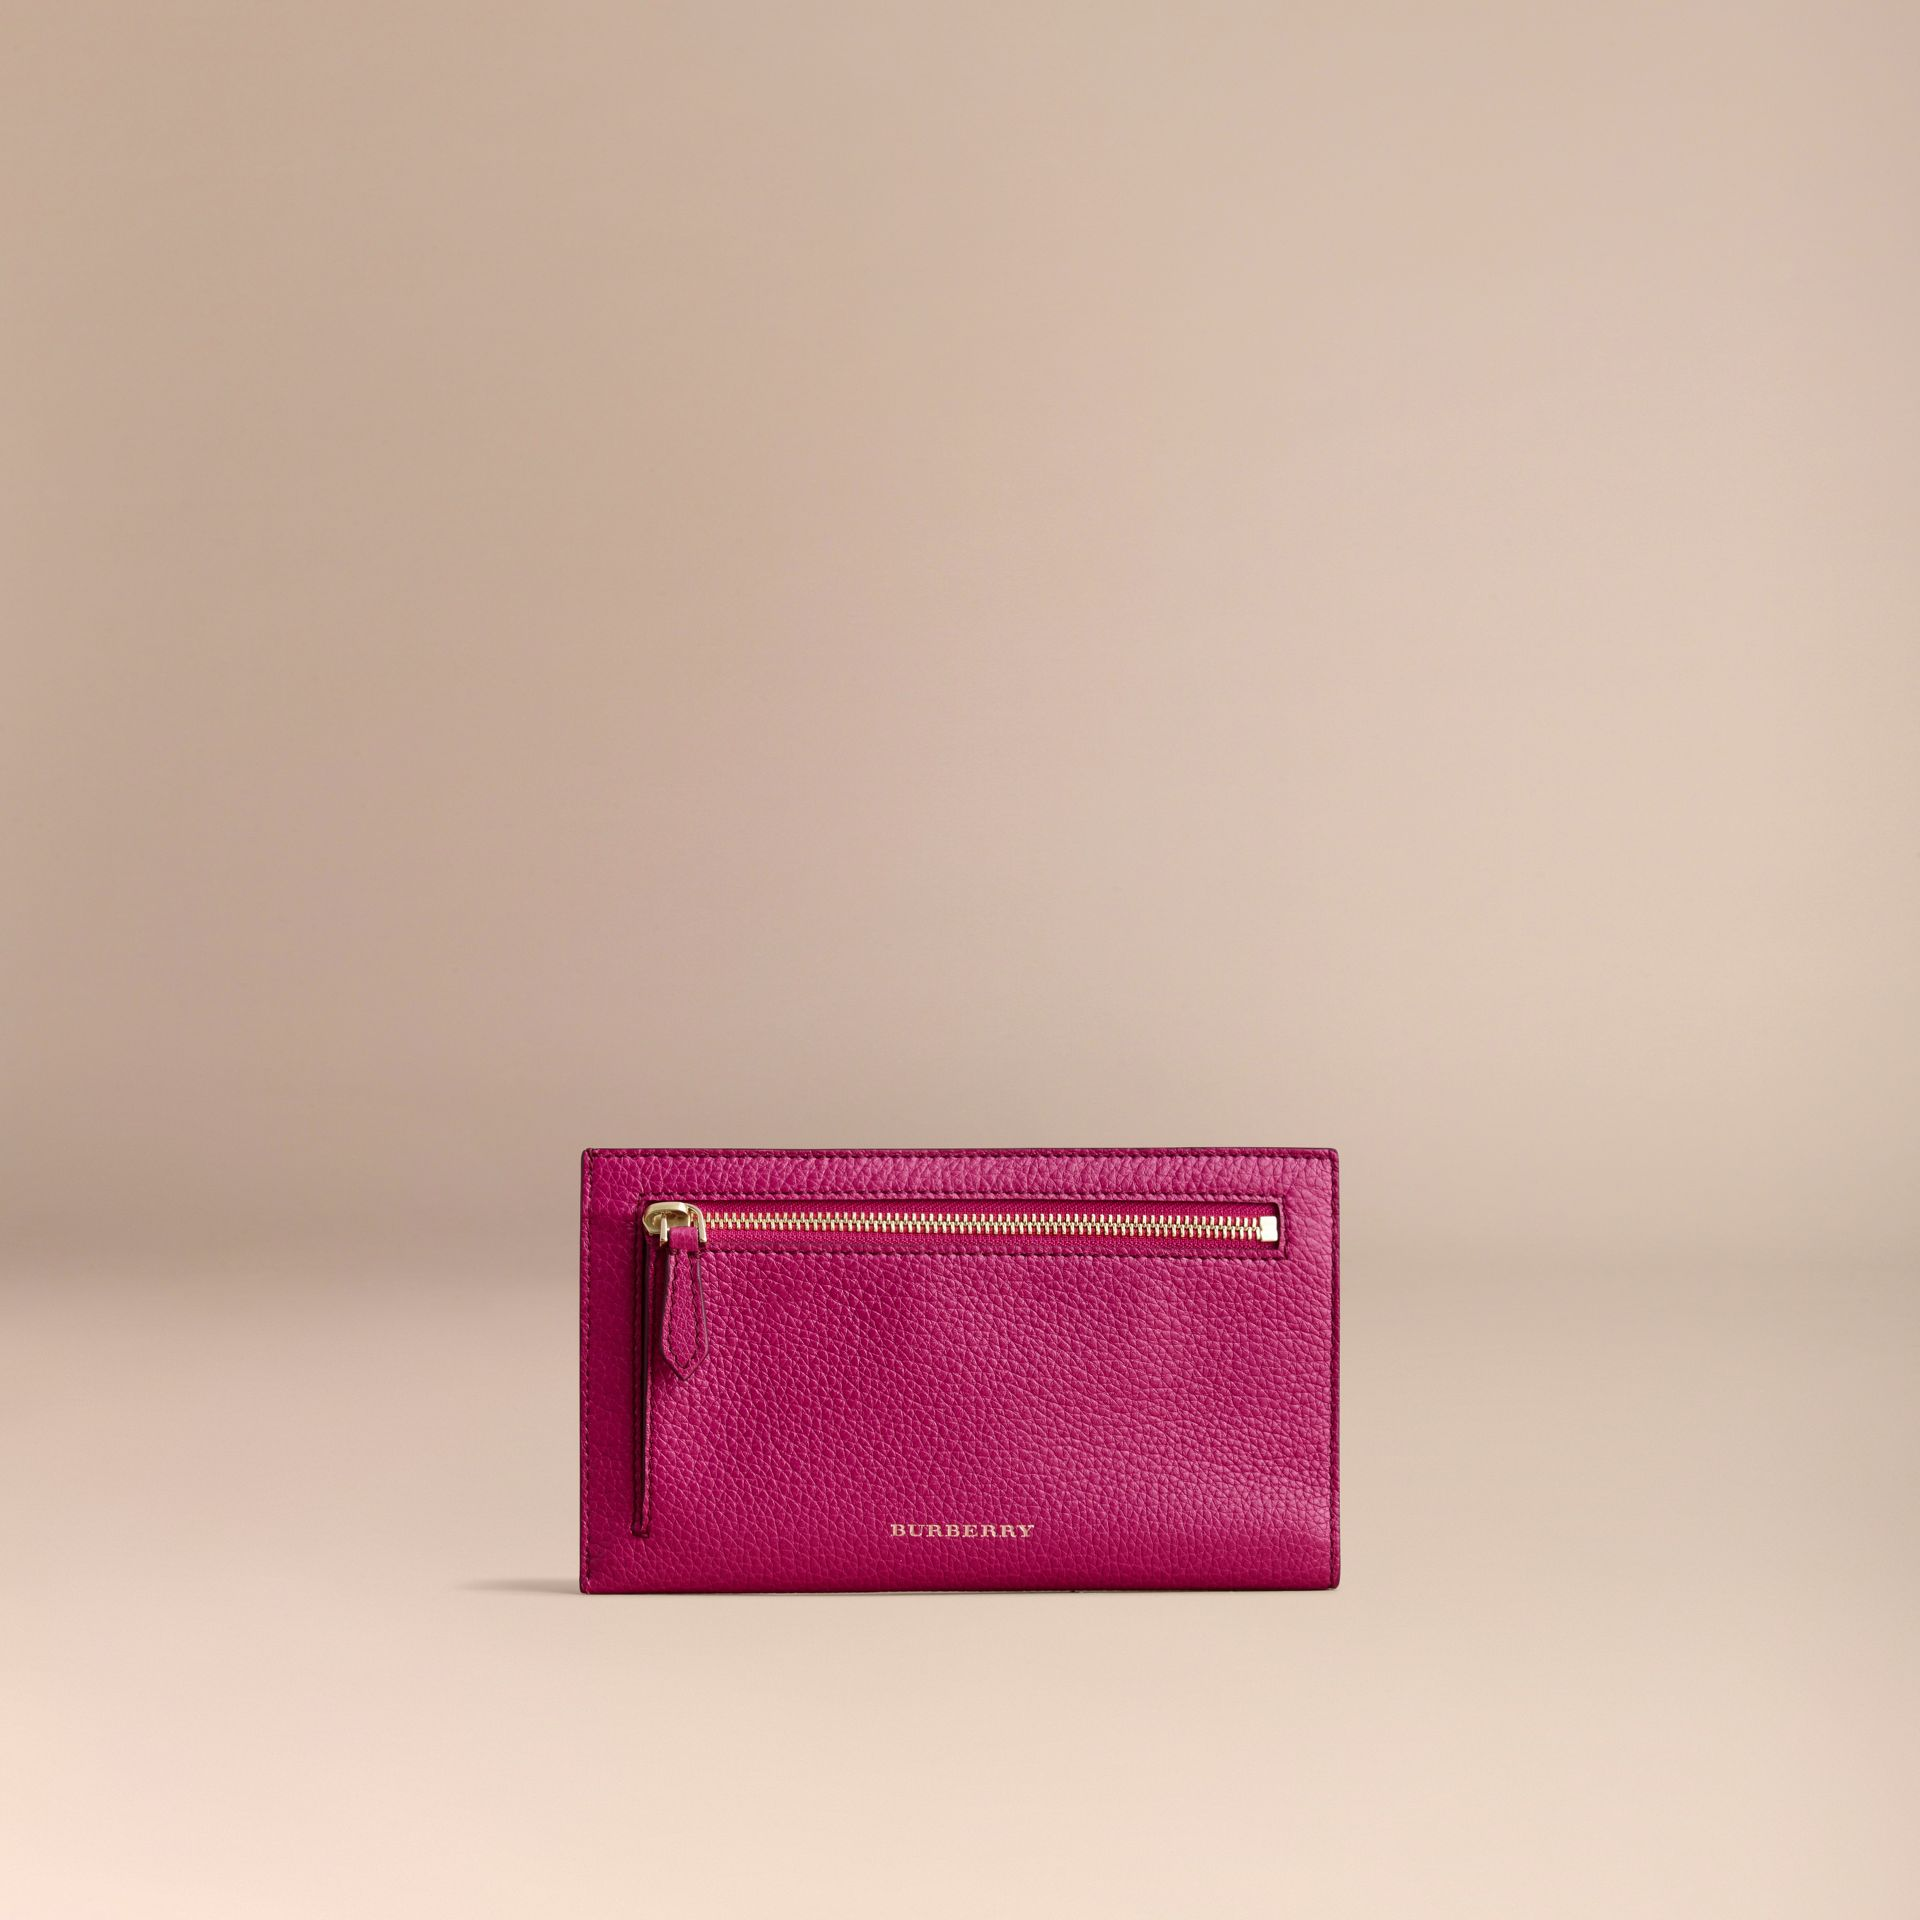 Grainy Leather Travel Case in Brilliant Fuchsia - Women | Burberry Hong Kong - gallery image 5